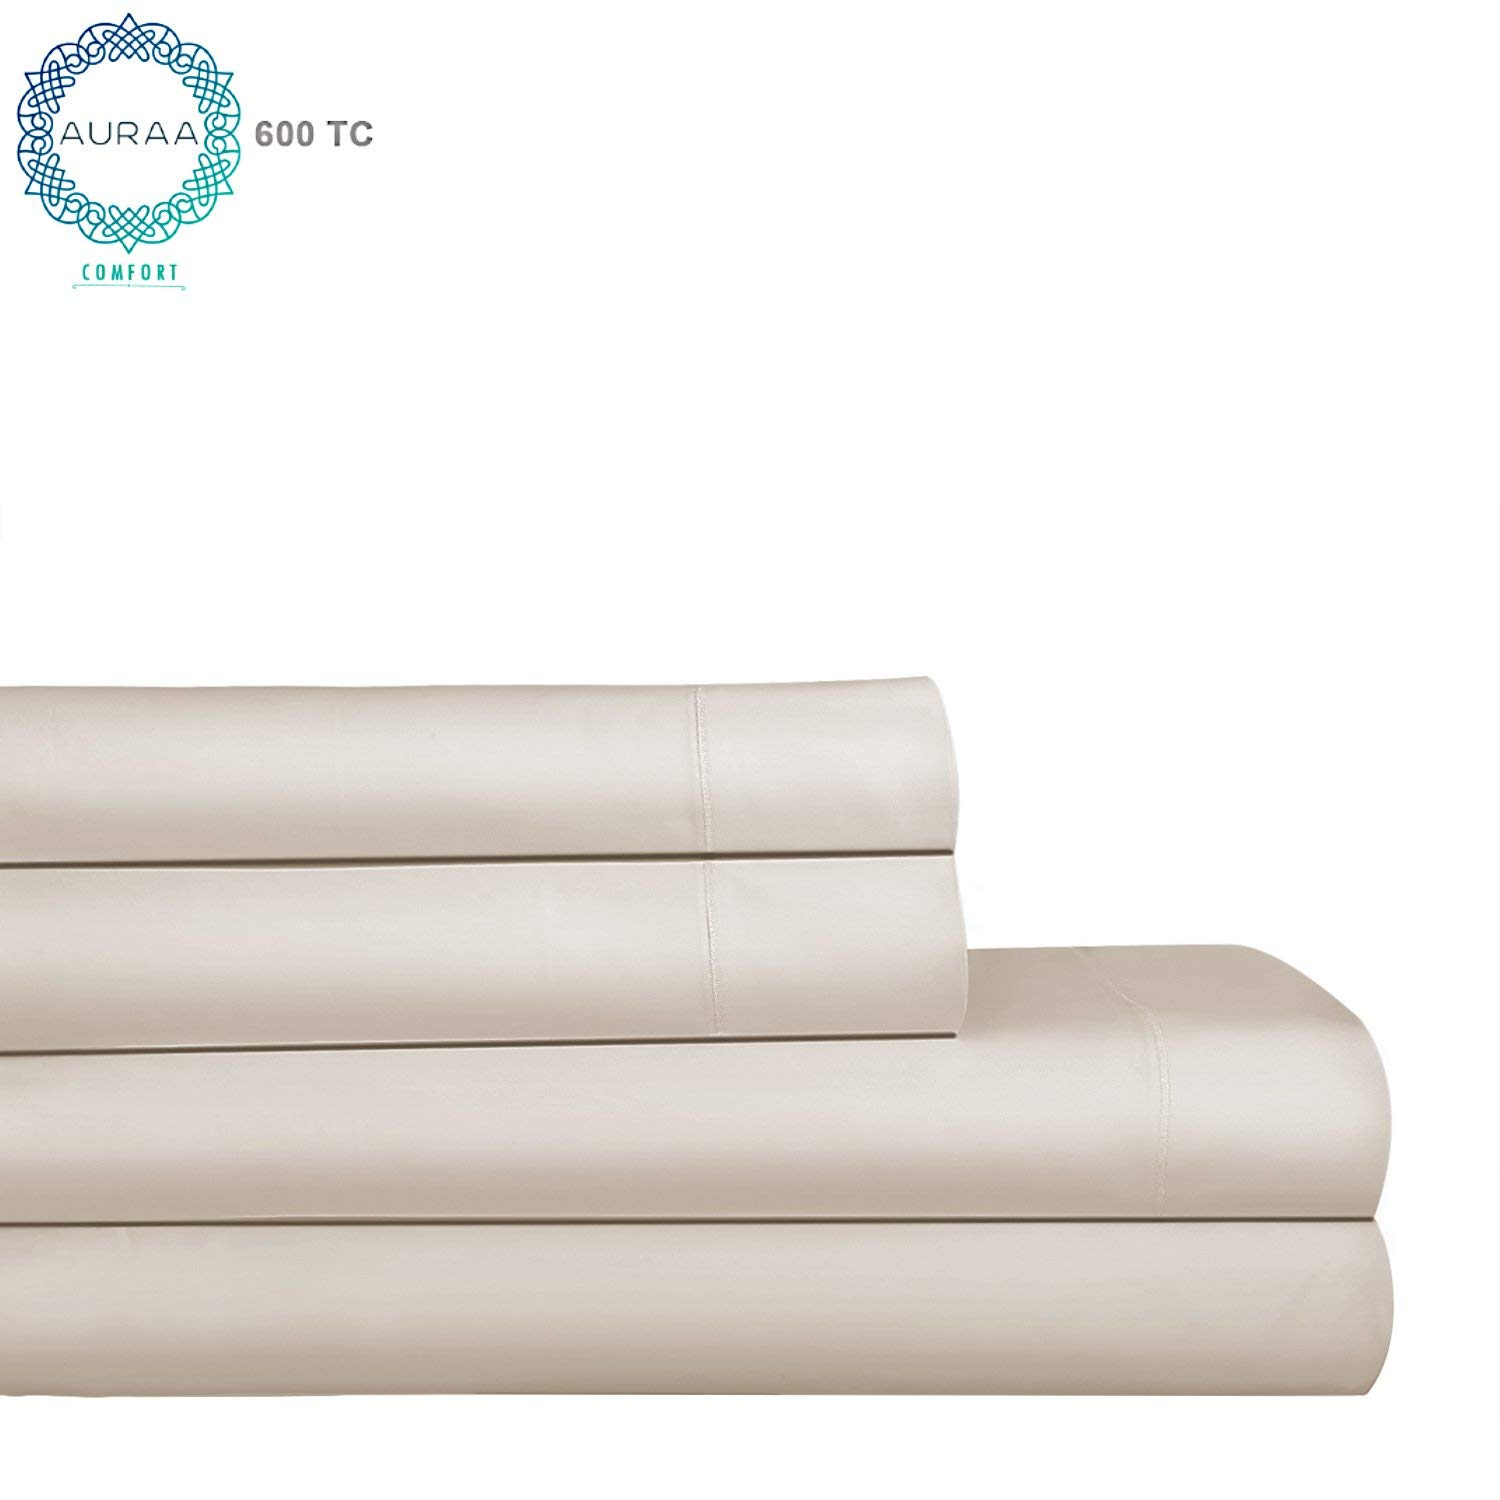 """AURAA Comfort 600 Thread Count 100% AMERICAN SUPIMA Long Staple Cotton Sheet Set,4 Piece Set, FULL SHEETS SATEEN Weave,Hotel Collection Soft Luxury Bedding,Fits Upto 18"""" Deep Pocket,IVORY"""